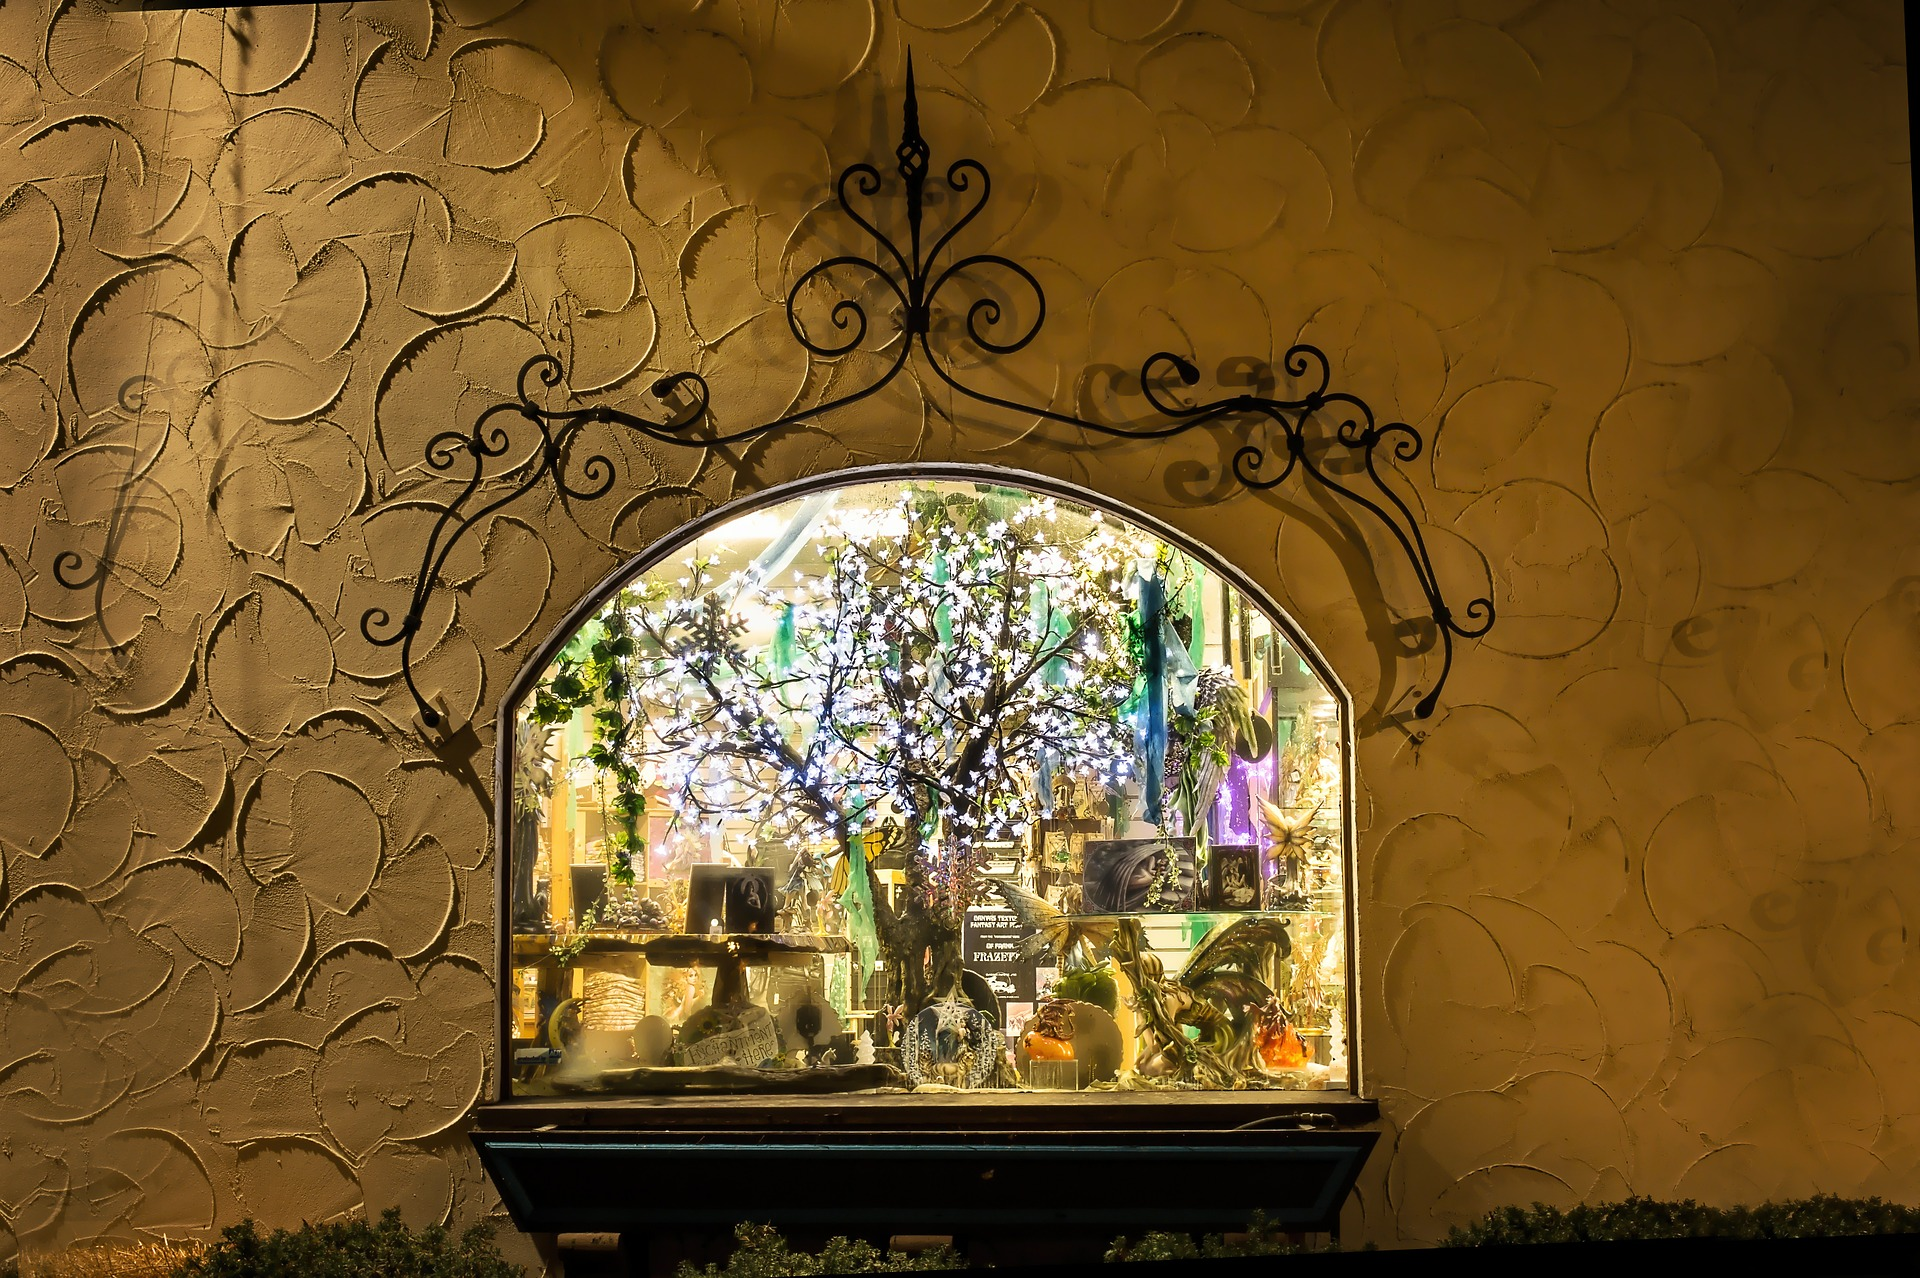 Window with Ornaments, Wall, Window, Ornaments, Object, HQ Photo